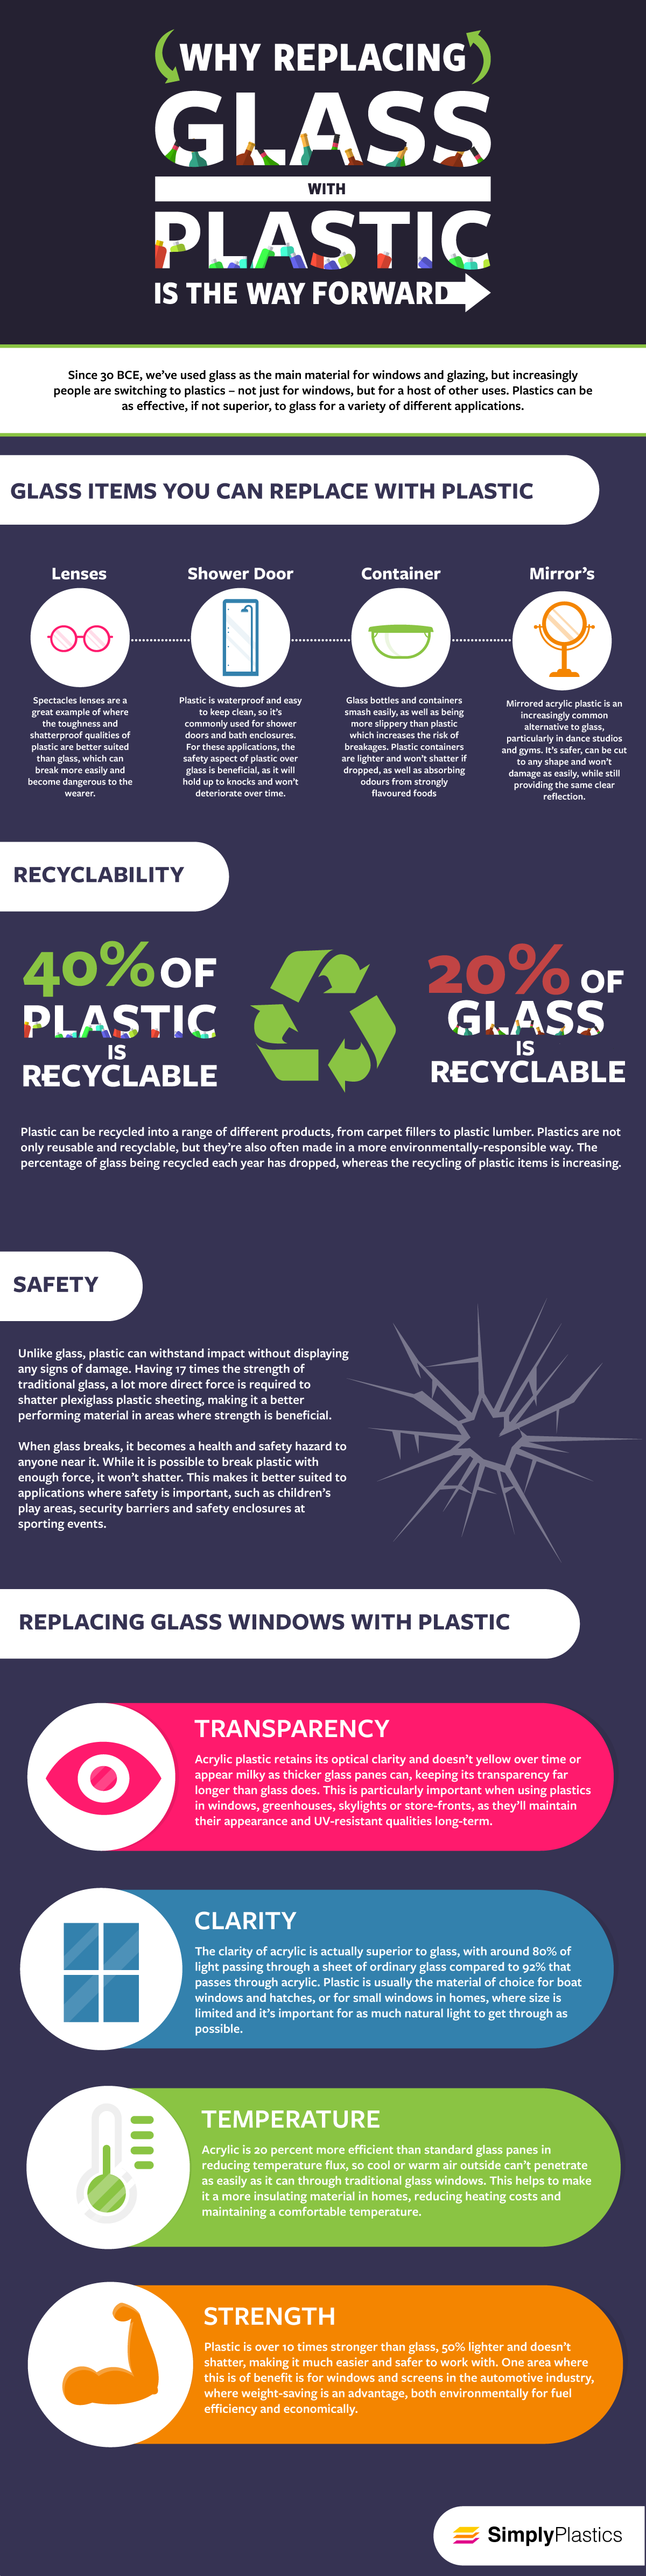 Why Plastic is Still the Better Bet Compared to Glass - Infographic